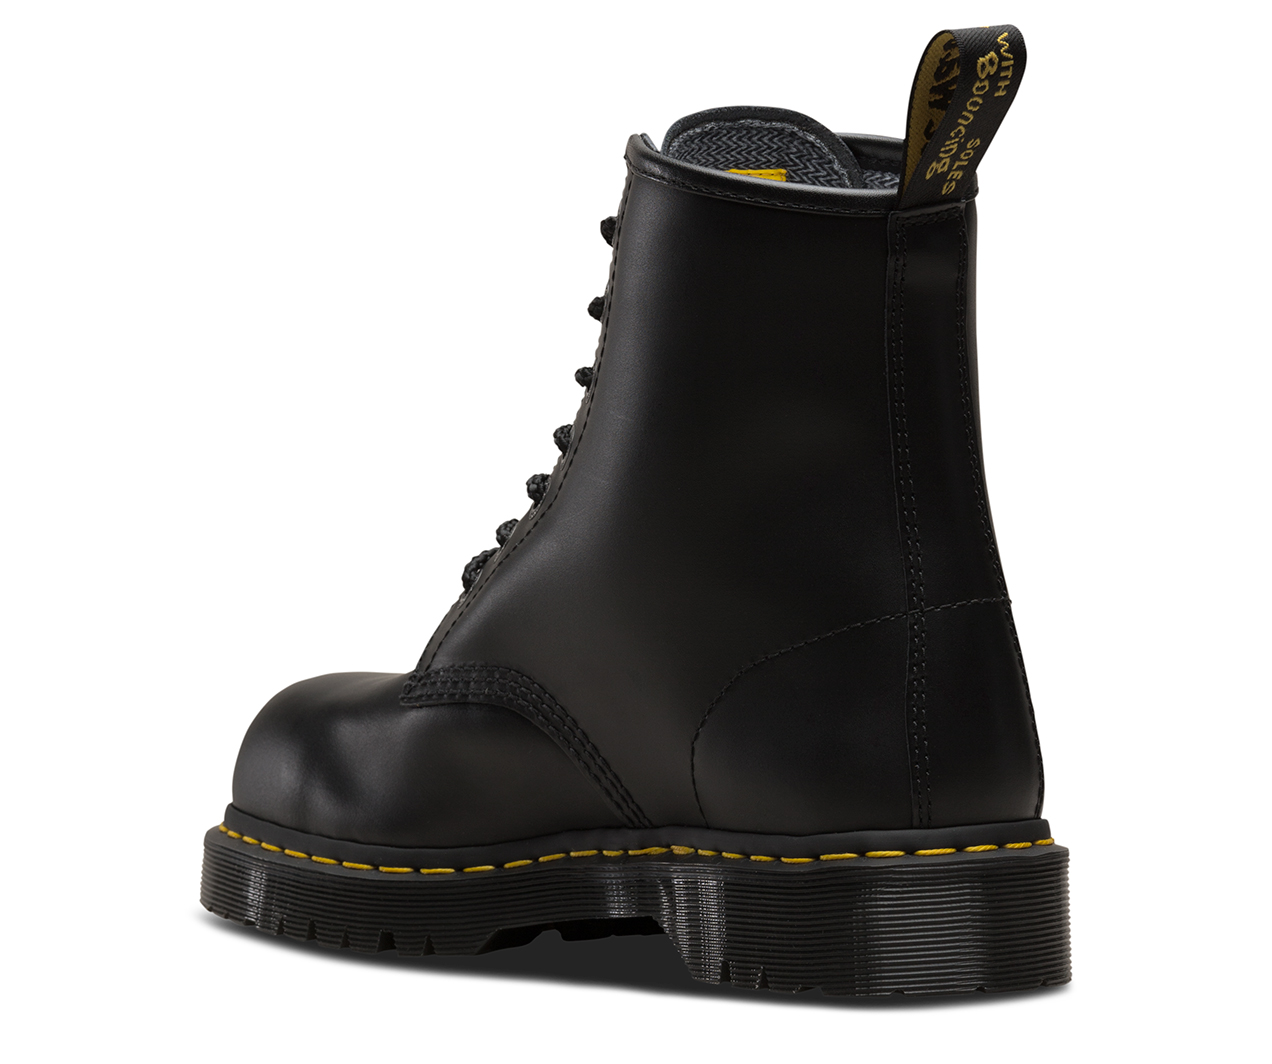 ICON 7B10 SSF 7-EYE   The Official FR Dr Martens Store 0dbbef13e92f